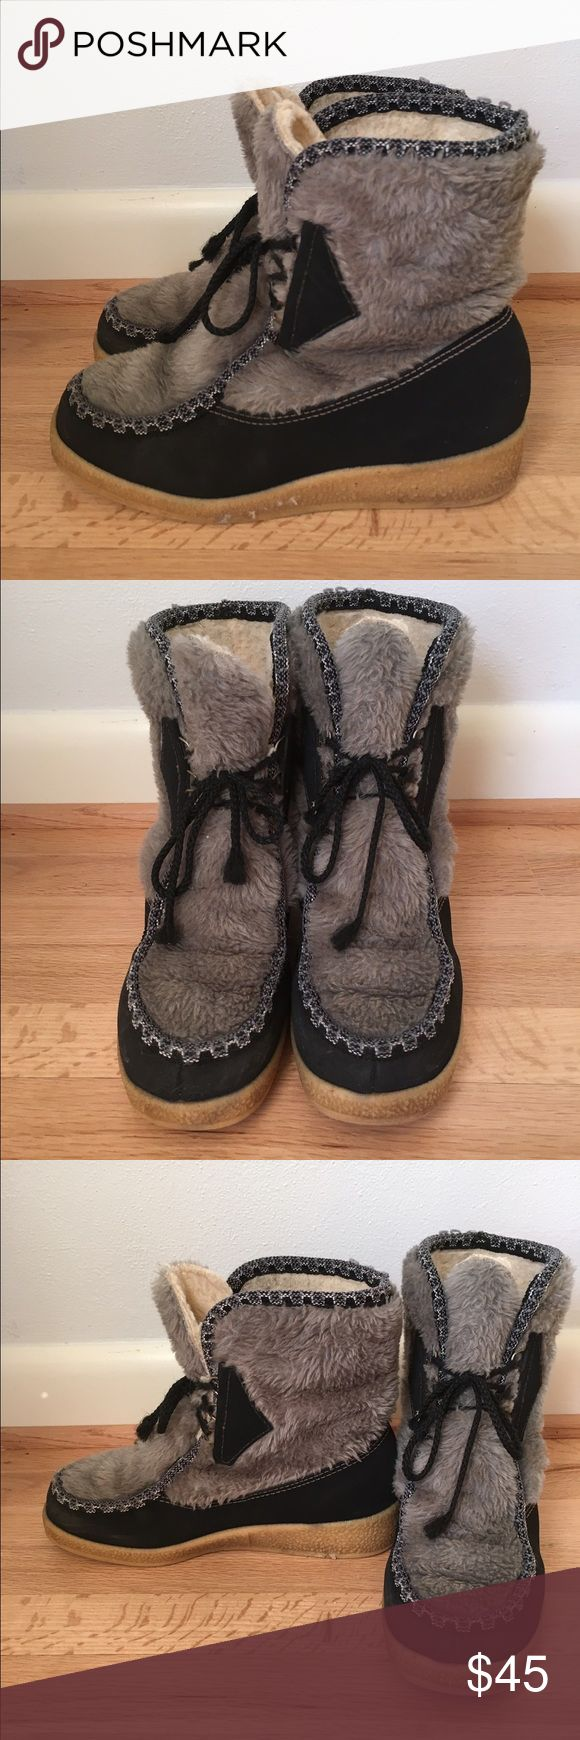 Women's Snowland vintage shearling boots, sz 10 Womens Size 10 Black And Gray Mukluk Boots With Faux Sherpa Fur Inside. Warm Winter Ankle Boots With 3 Silver Metal Half Rings On Each Side For Closures And Black Boot Laces. Body Of The Boot Is Black Faux Leather Like Suede With Gray Fur And Black/Gray Rope Trim. Heel Is A Tan Wedge Man Made Rubbery Substance With Nice Tread On The Soles. Boot In Very Good Vintage Condition; withonly a Small Amount Of Wear Inside And Outside.  No Scuffs Or…